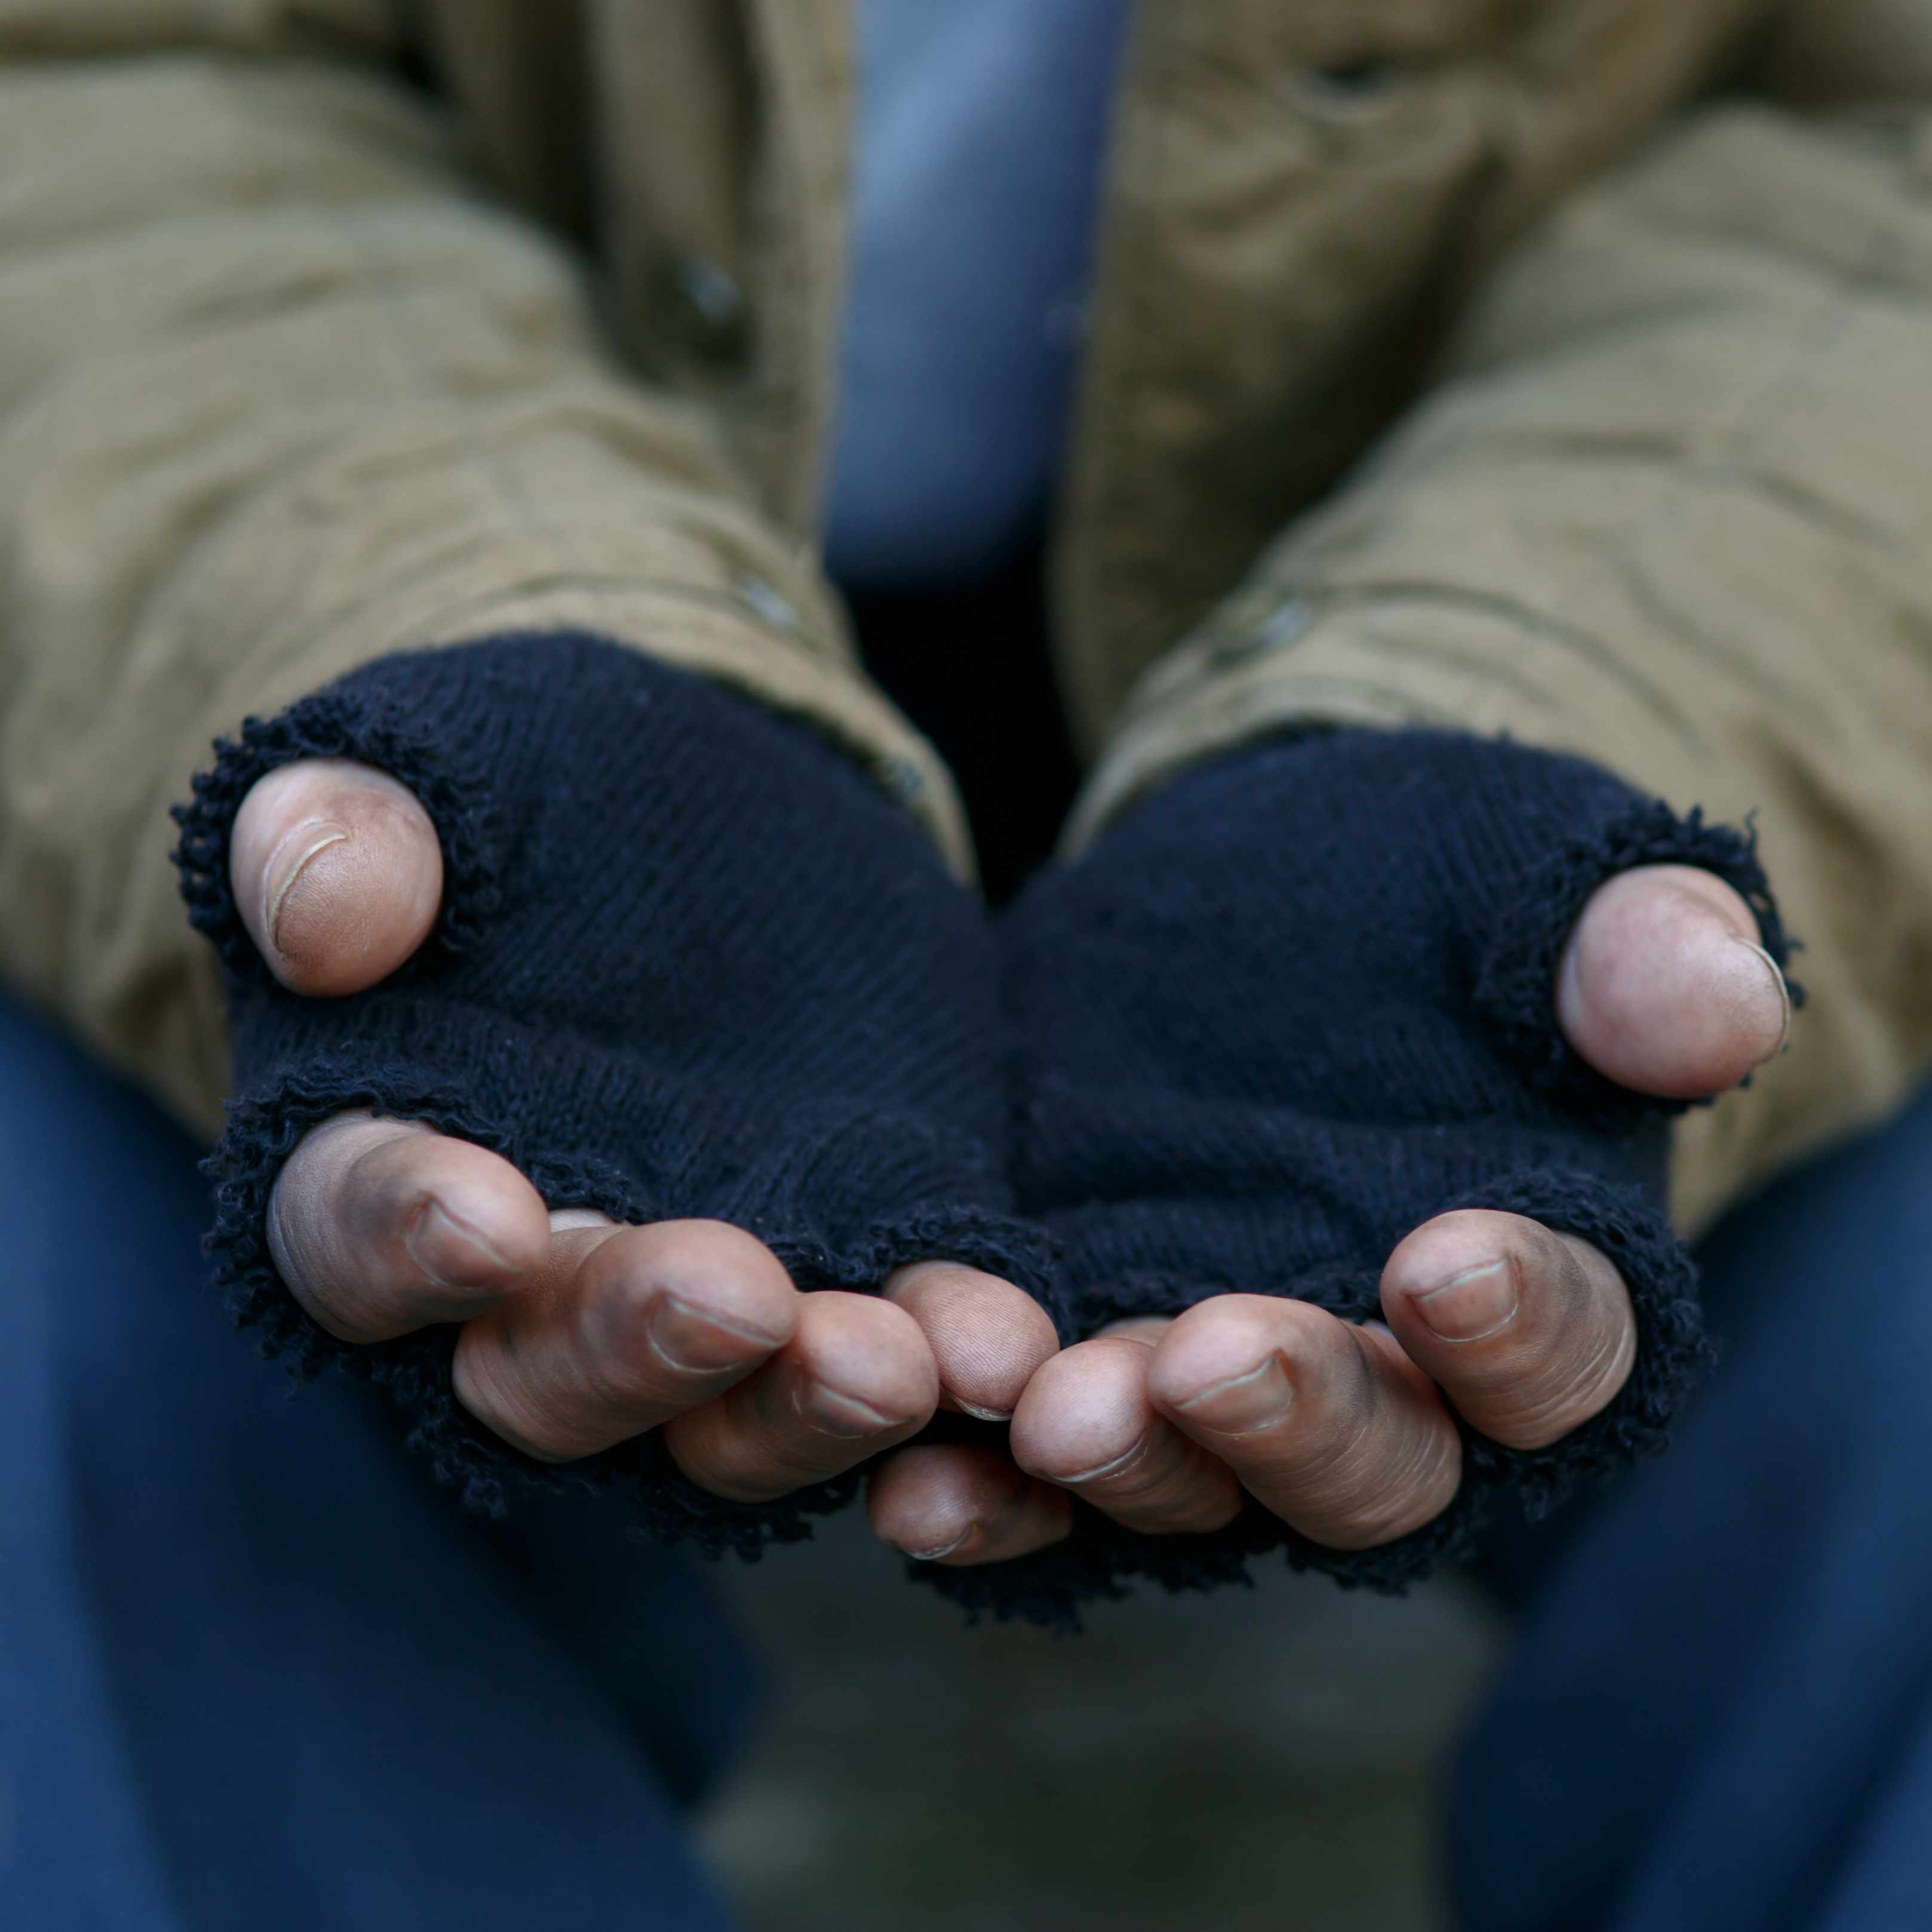 a homeless man holding out his hands for help